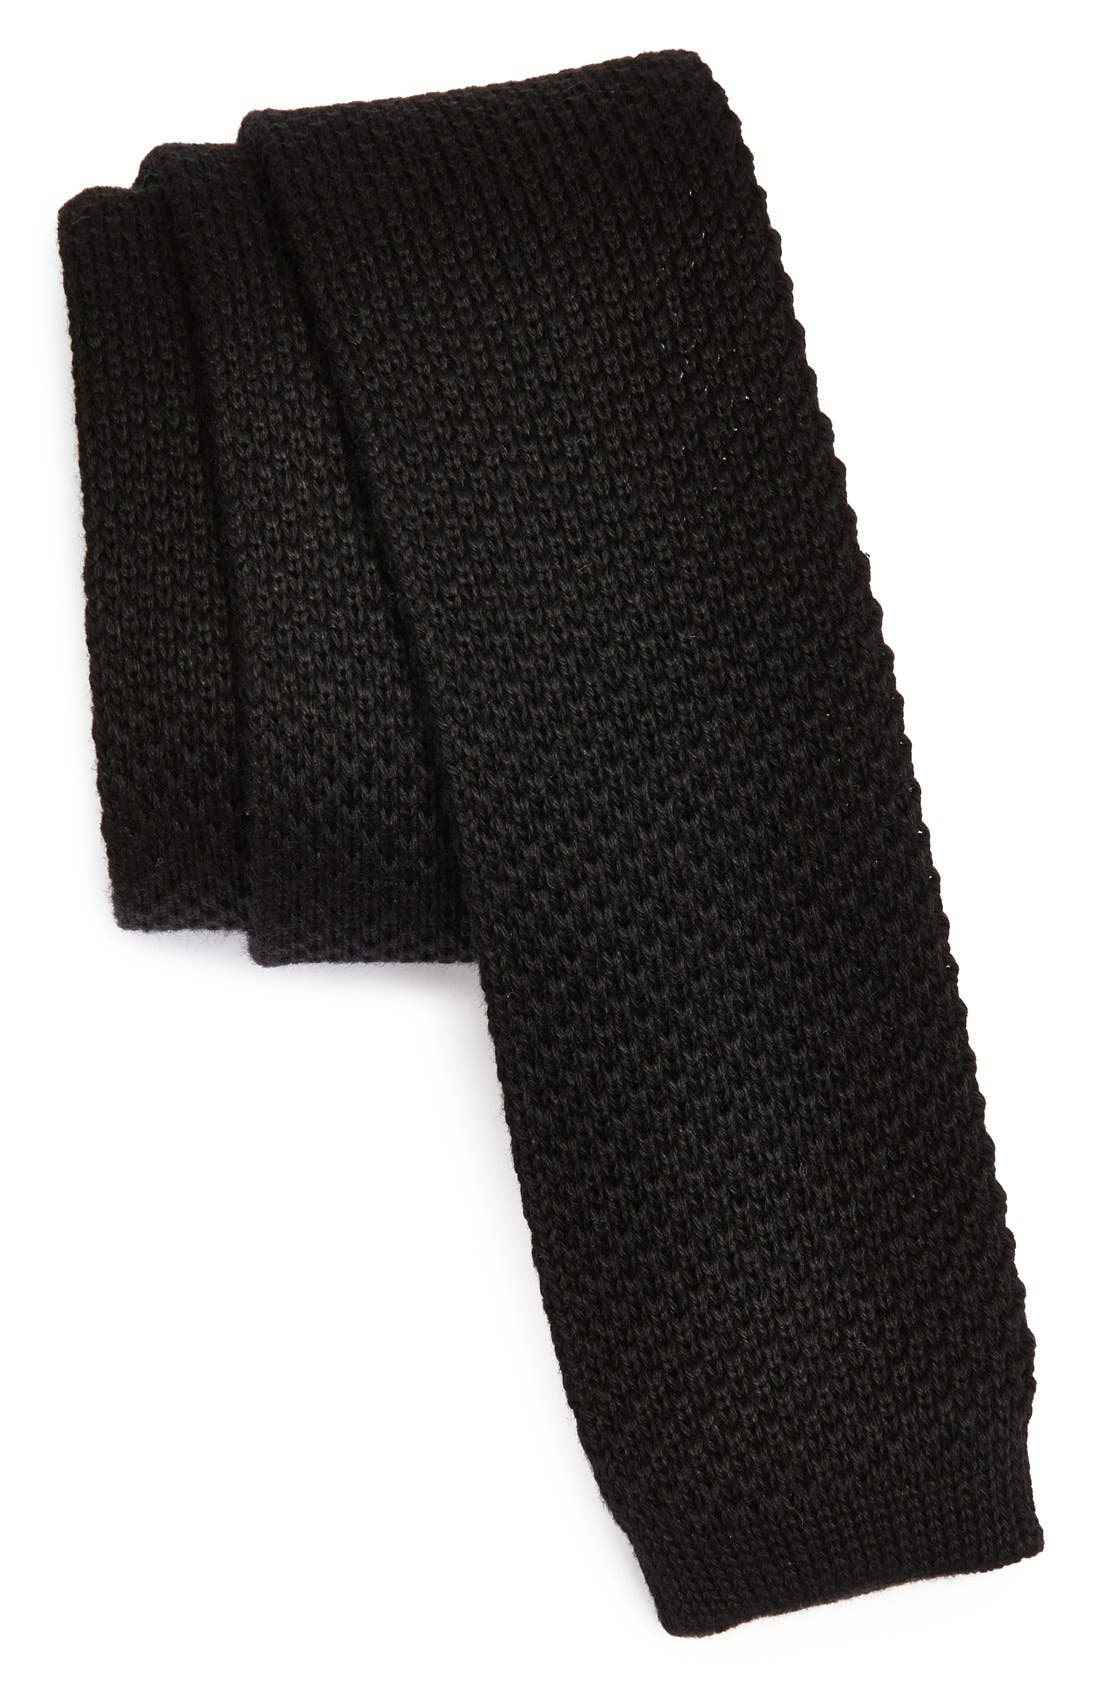 Main Image - BOSS HUGO BOSS Knit Cotton Tie